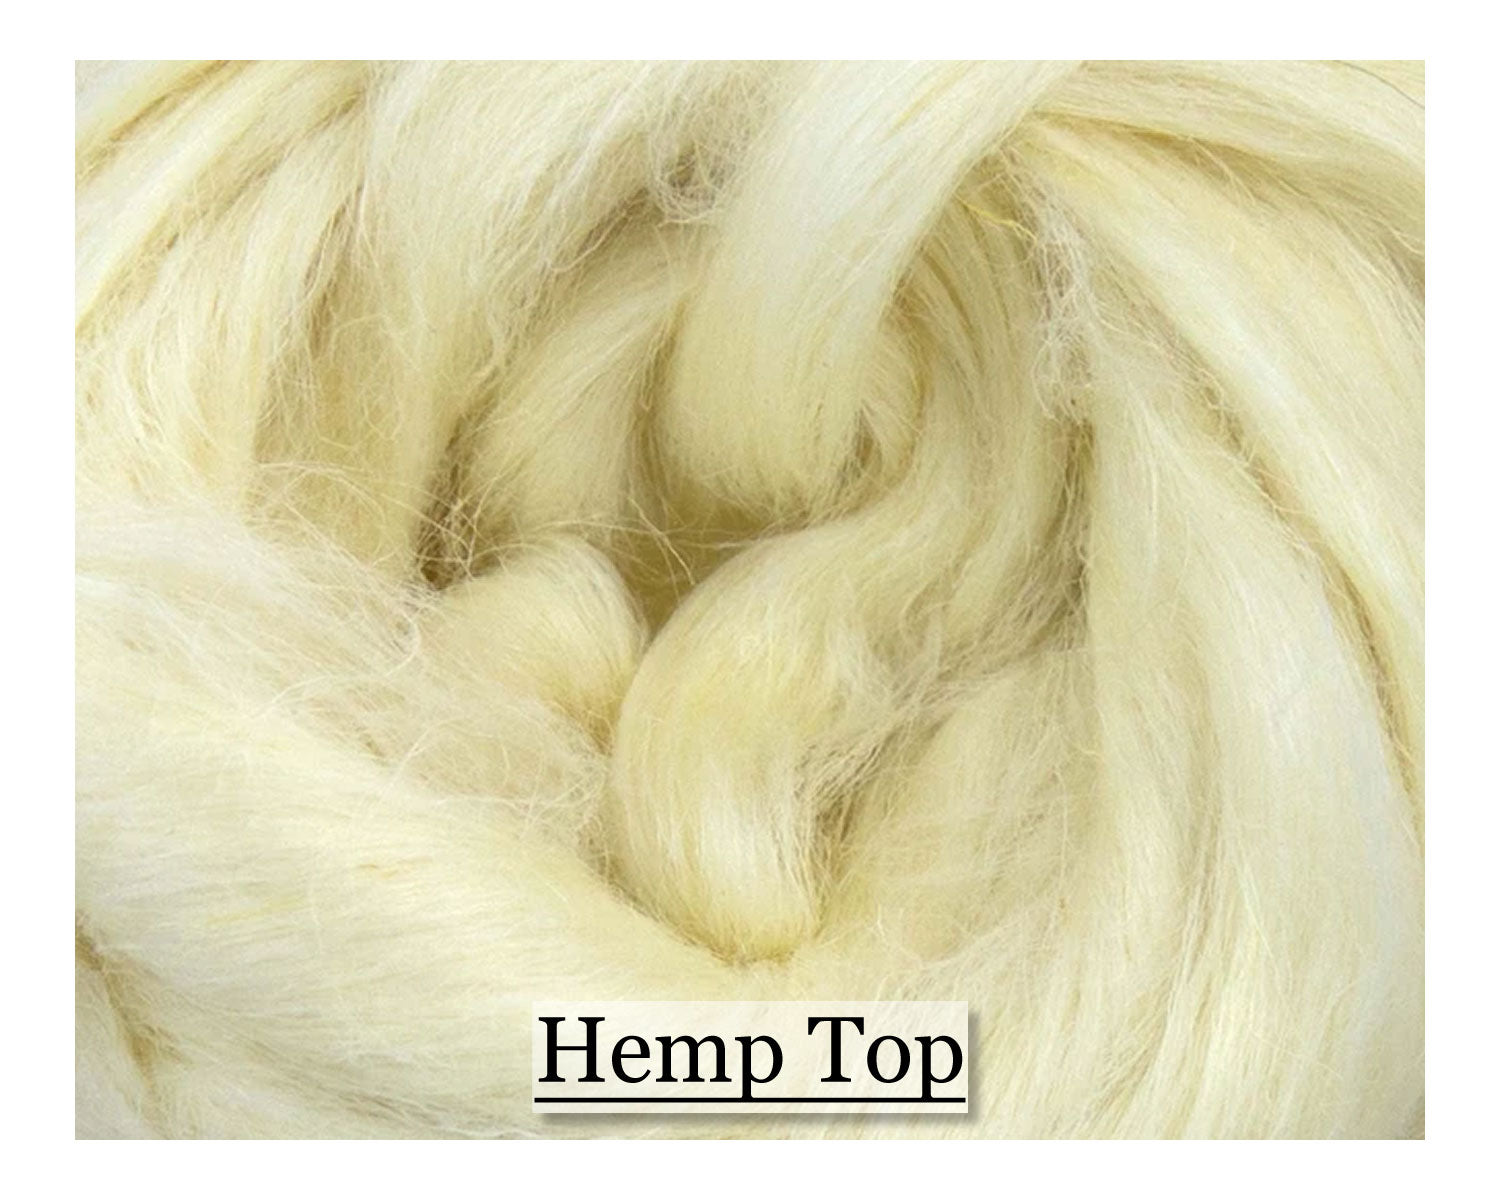 Hemp Top - 1, 2 or 4 oz